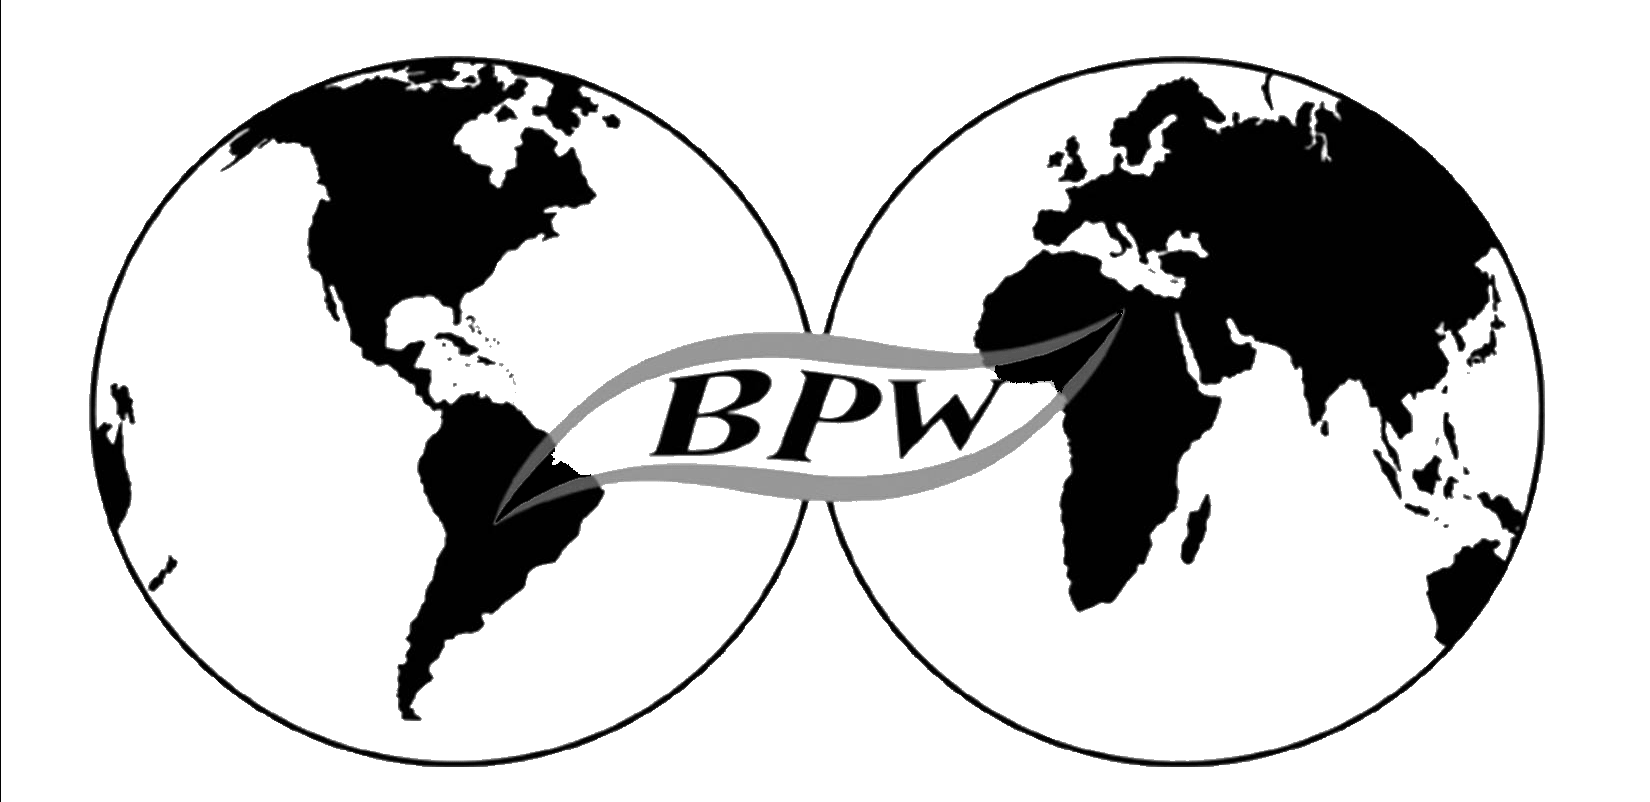 BPW Approaching Sustainable Development Goals